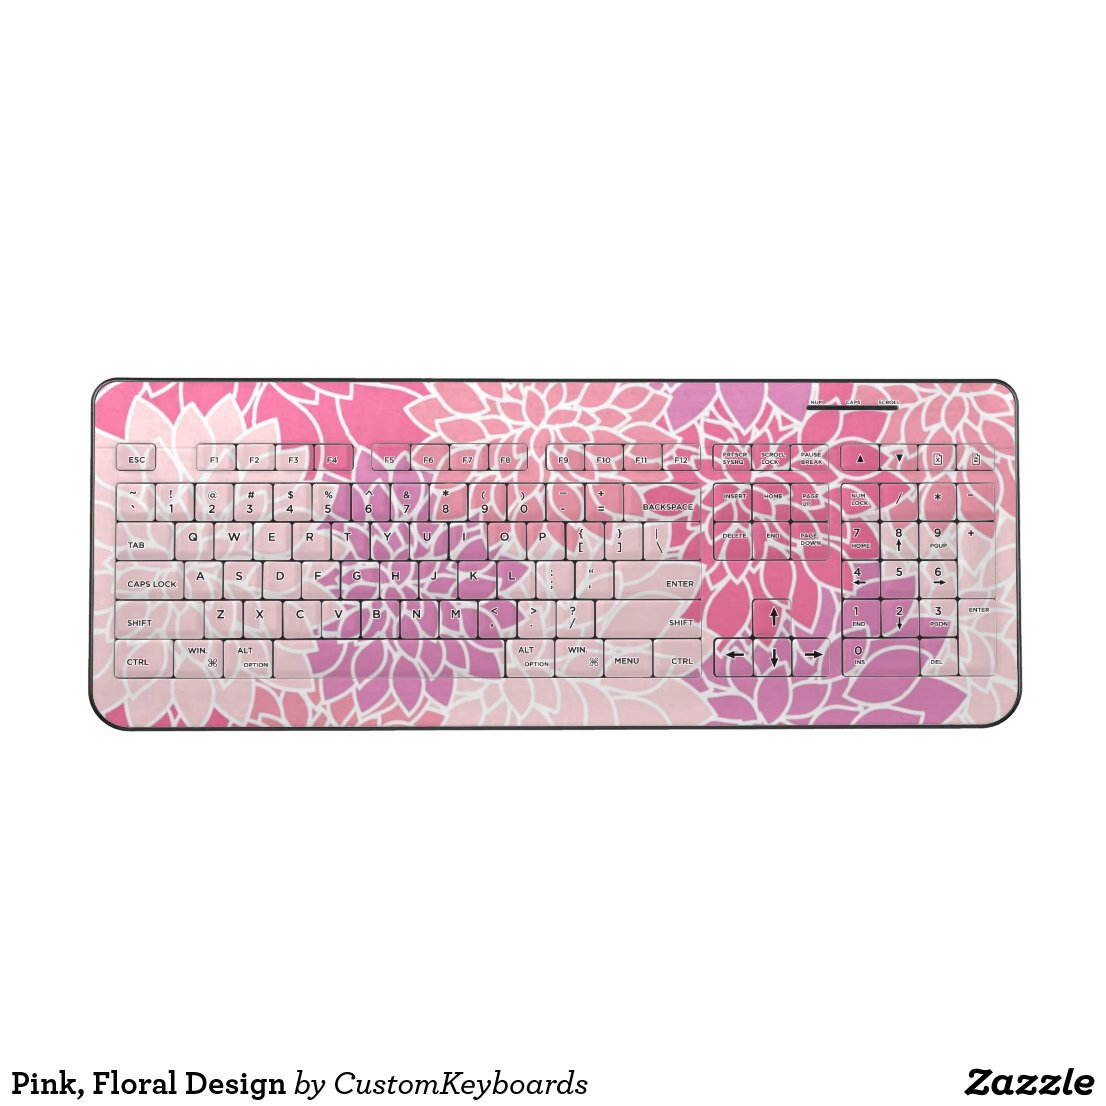 Pink, Floral Design Wireless Keyboard